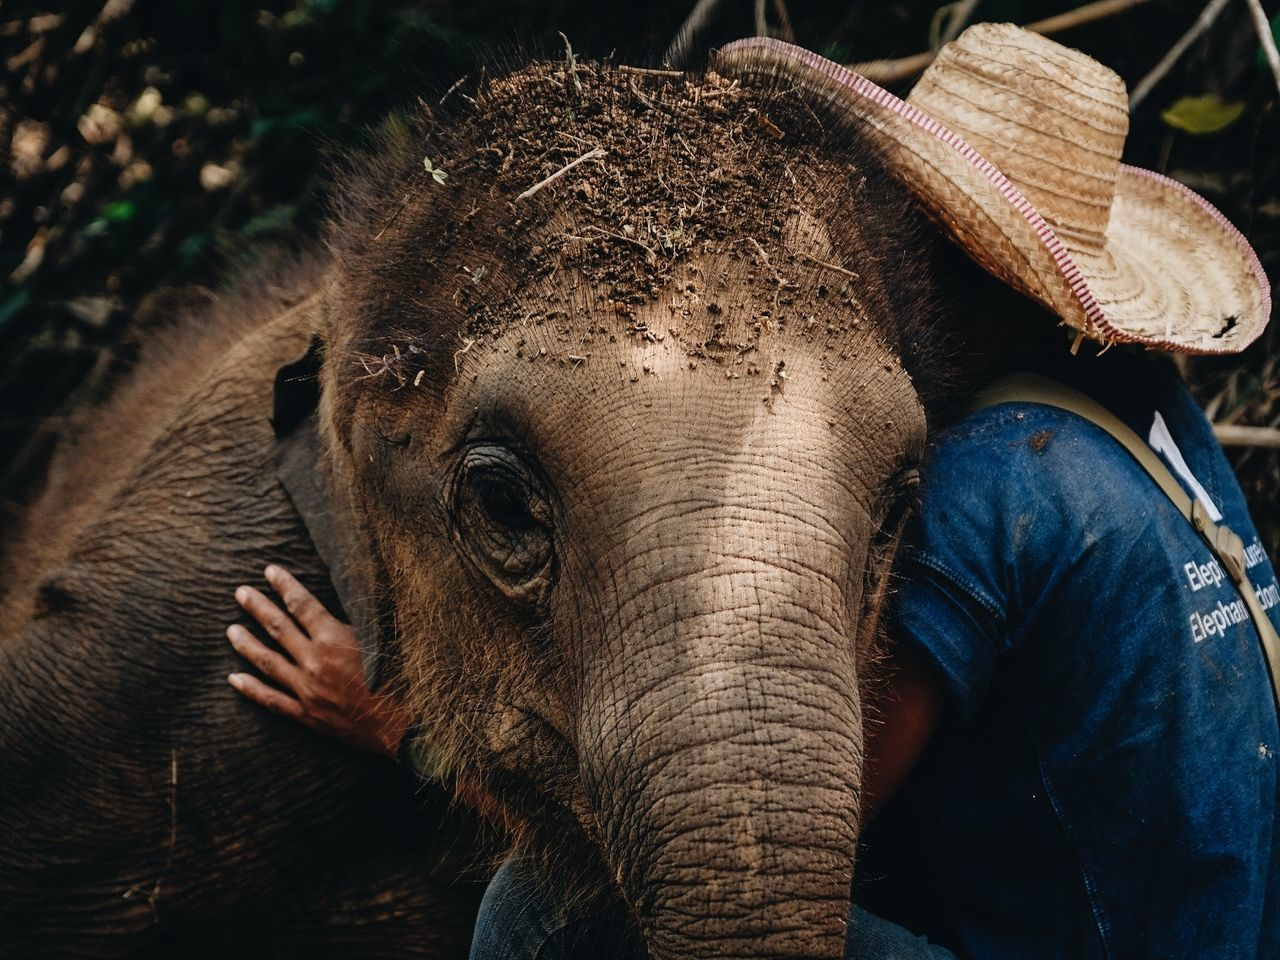 This sanctuary takes in abused elephants that are unable to survive in the wild. This particular baby elephant is extremely attached to one particular mahout, constantly seeking attention from him.seekingconstantly seeking animal wildlife elephant animal one animal close-up outdoors The Portraitist - 2017 EyeEm Awards beauty in Nature Nature adventure The Photojournalist - 2017 EyeEm Awards The Great Outdoors - 2017 EyeEm Awards